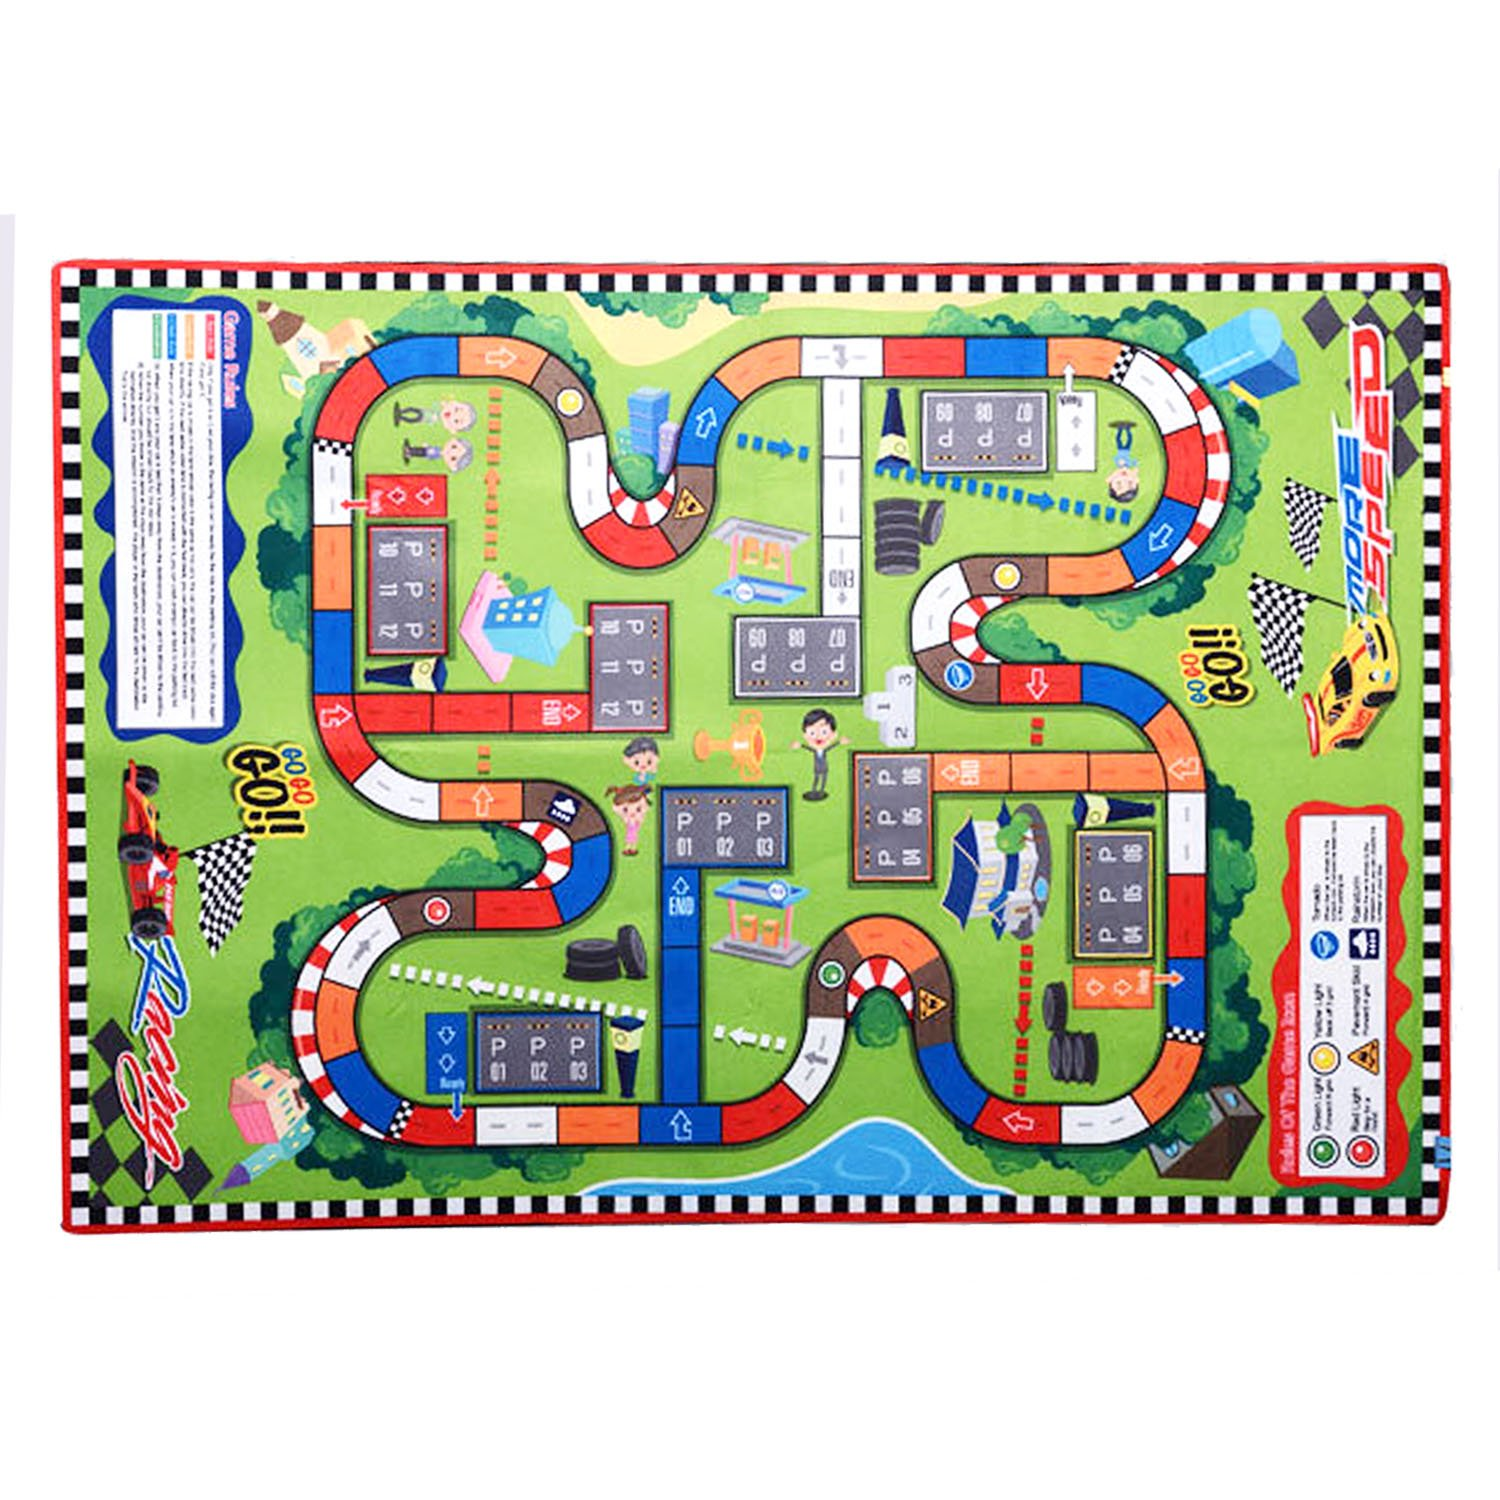 Kids' Rugs Large (57'' X39'') Rug City Life Great For Playing With Cars & Toys,Children Educational Road Traffic Play Mat, Kids Carpet Playmat Rug, Ideal Gift For Kids Travel/Indoor/Outdoor Safely